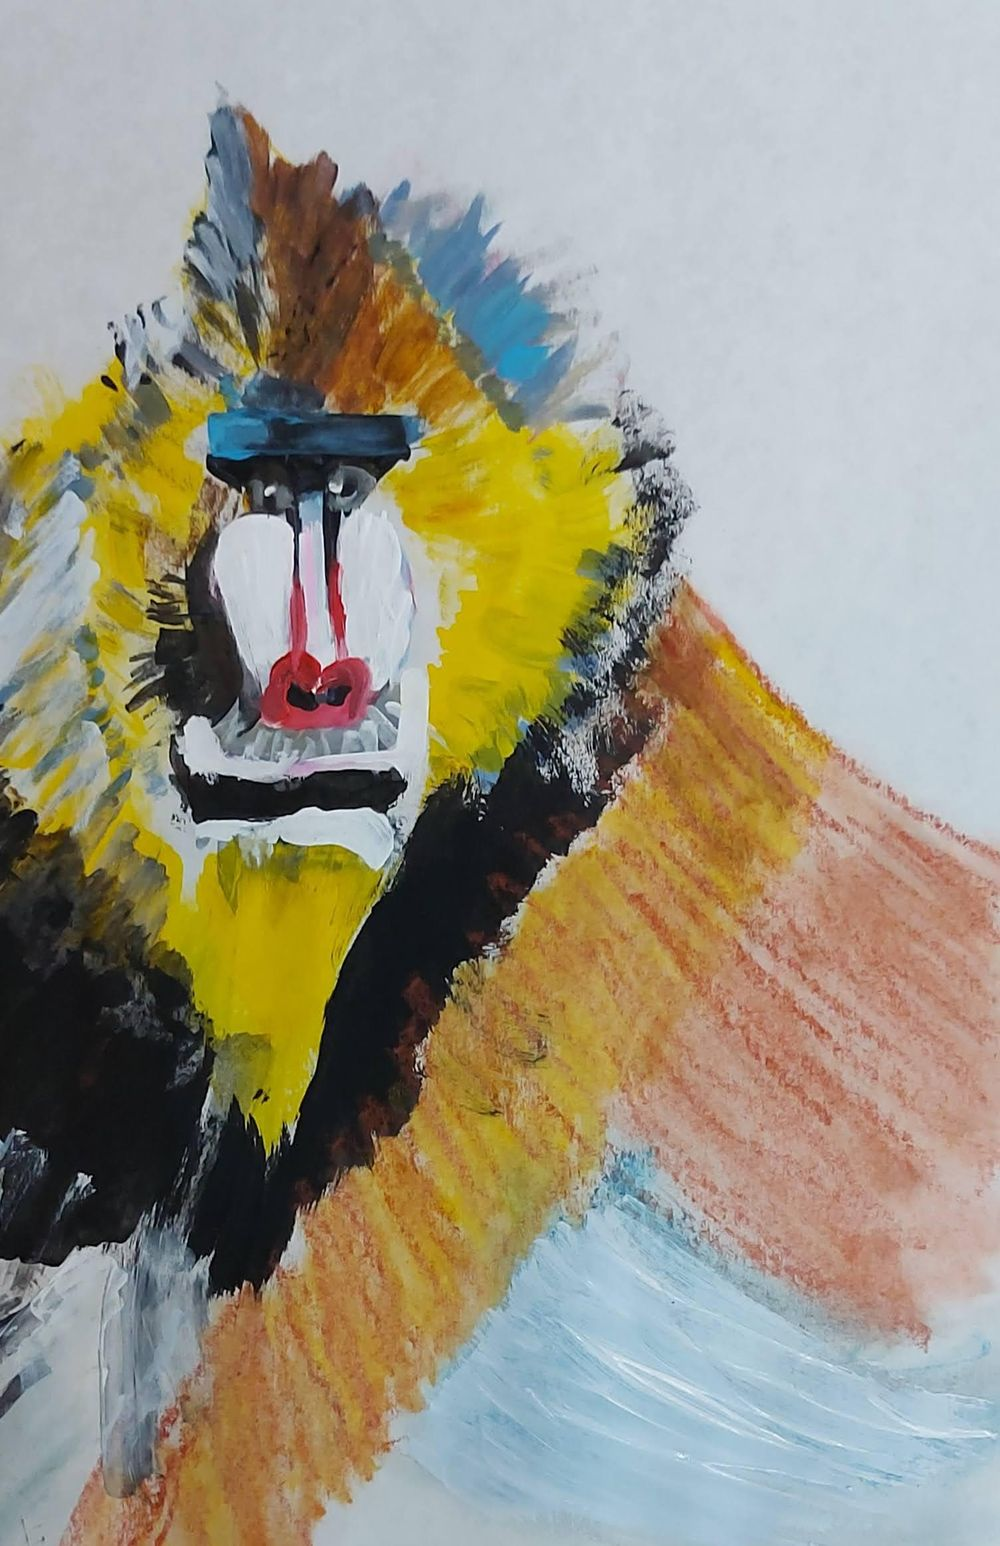 Abstract animal painting - image 8 - student project